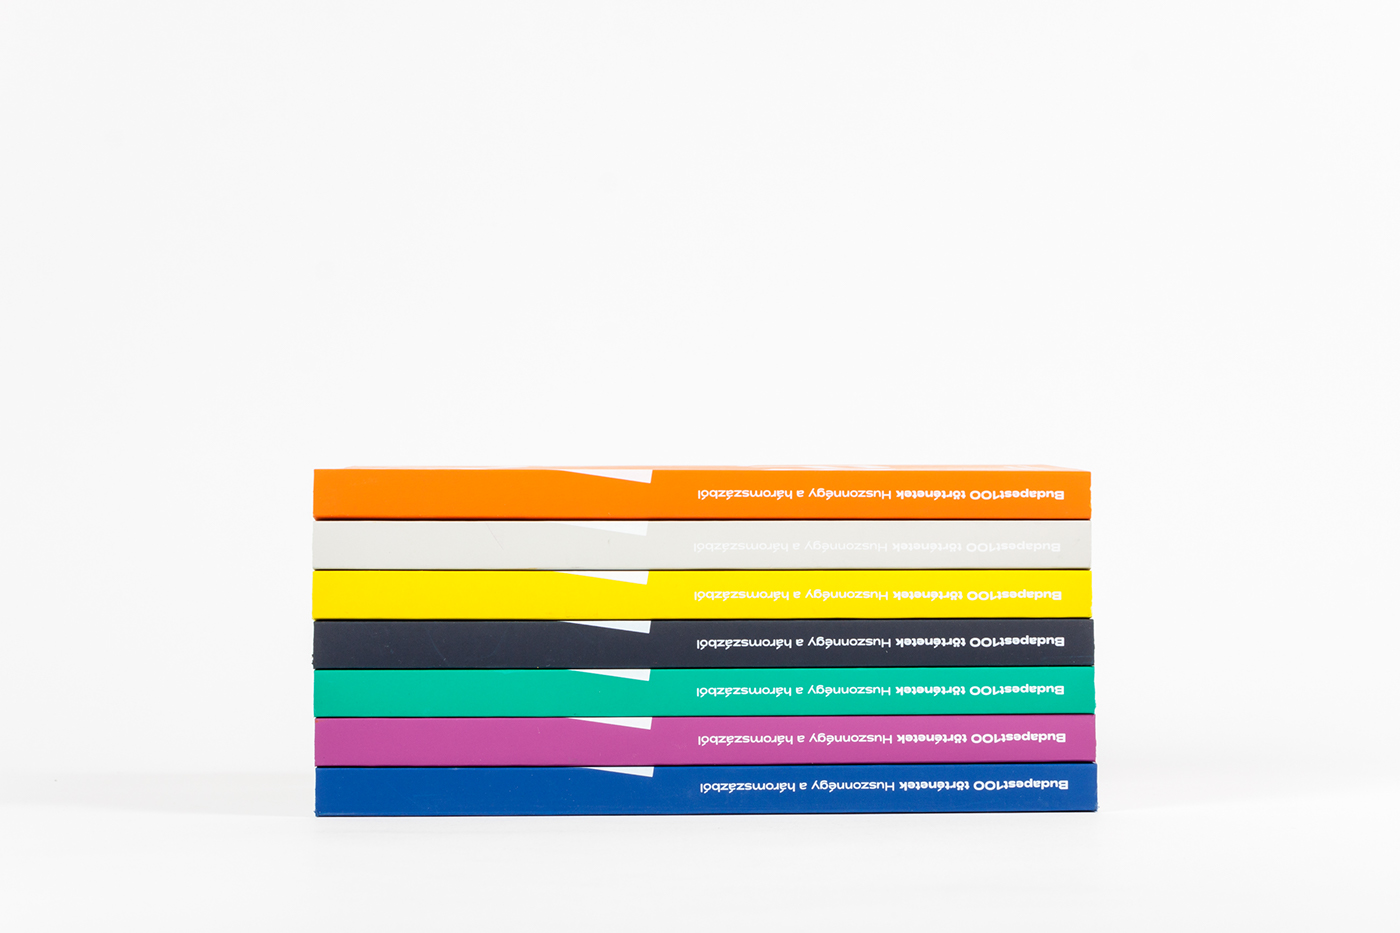 budapest book houses color Layout grid history Oral History Screenprinting offset